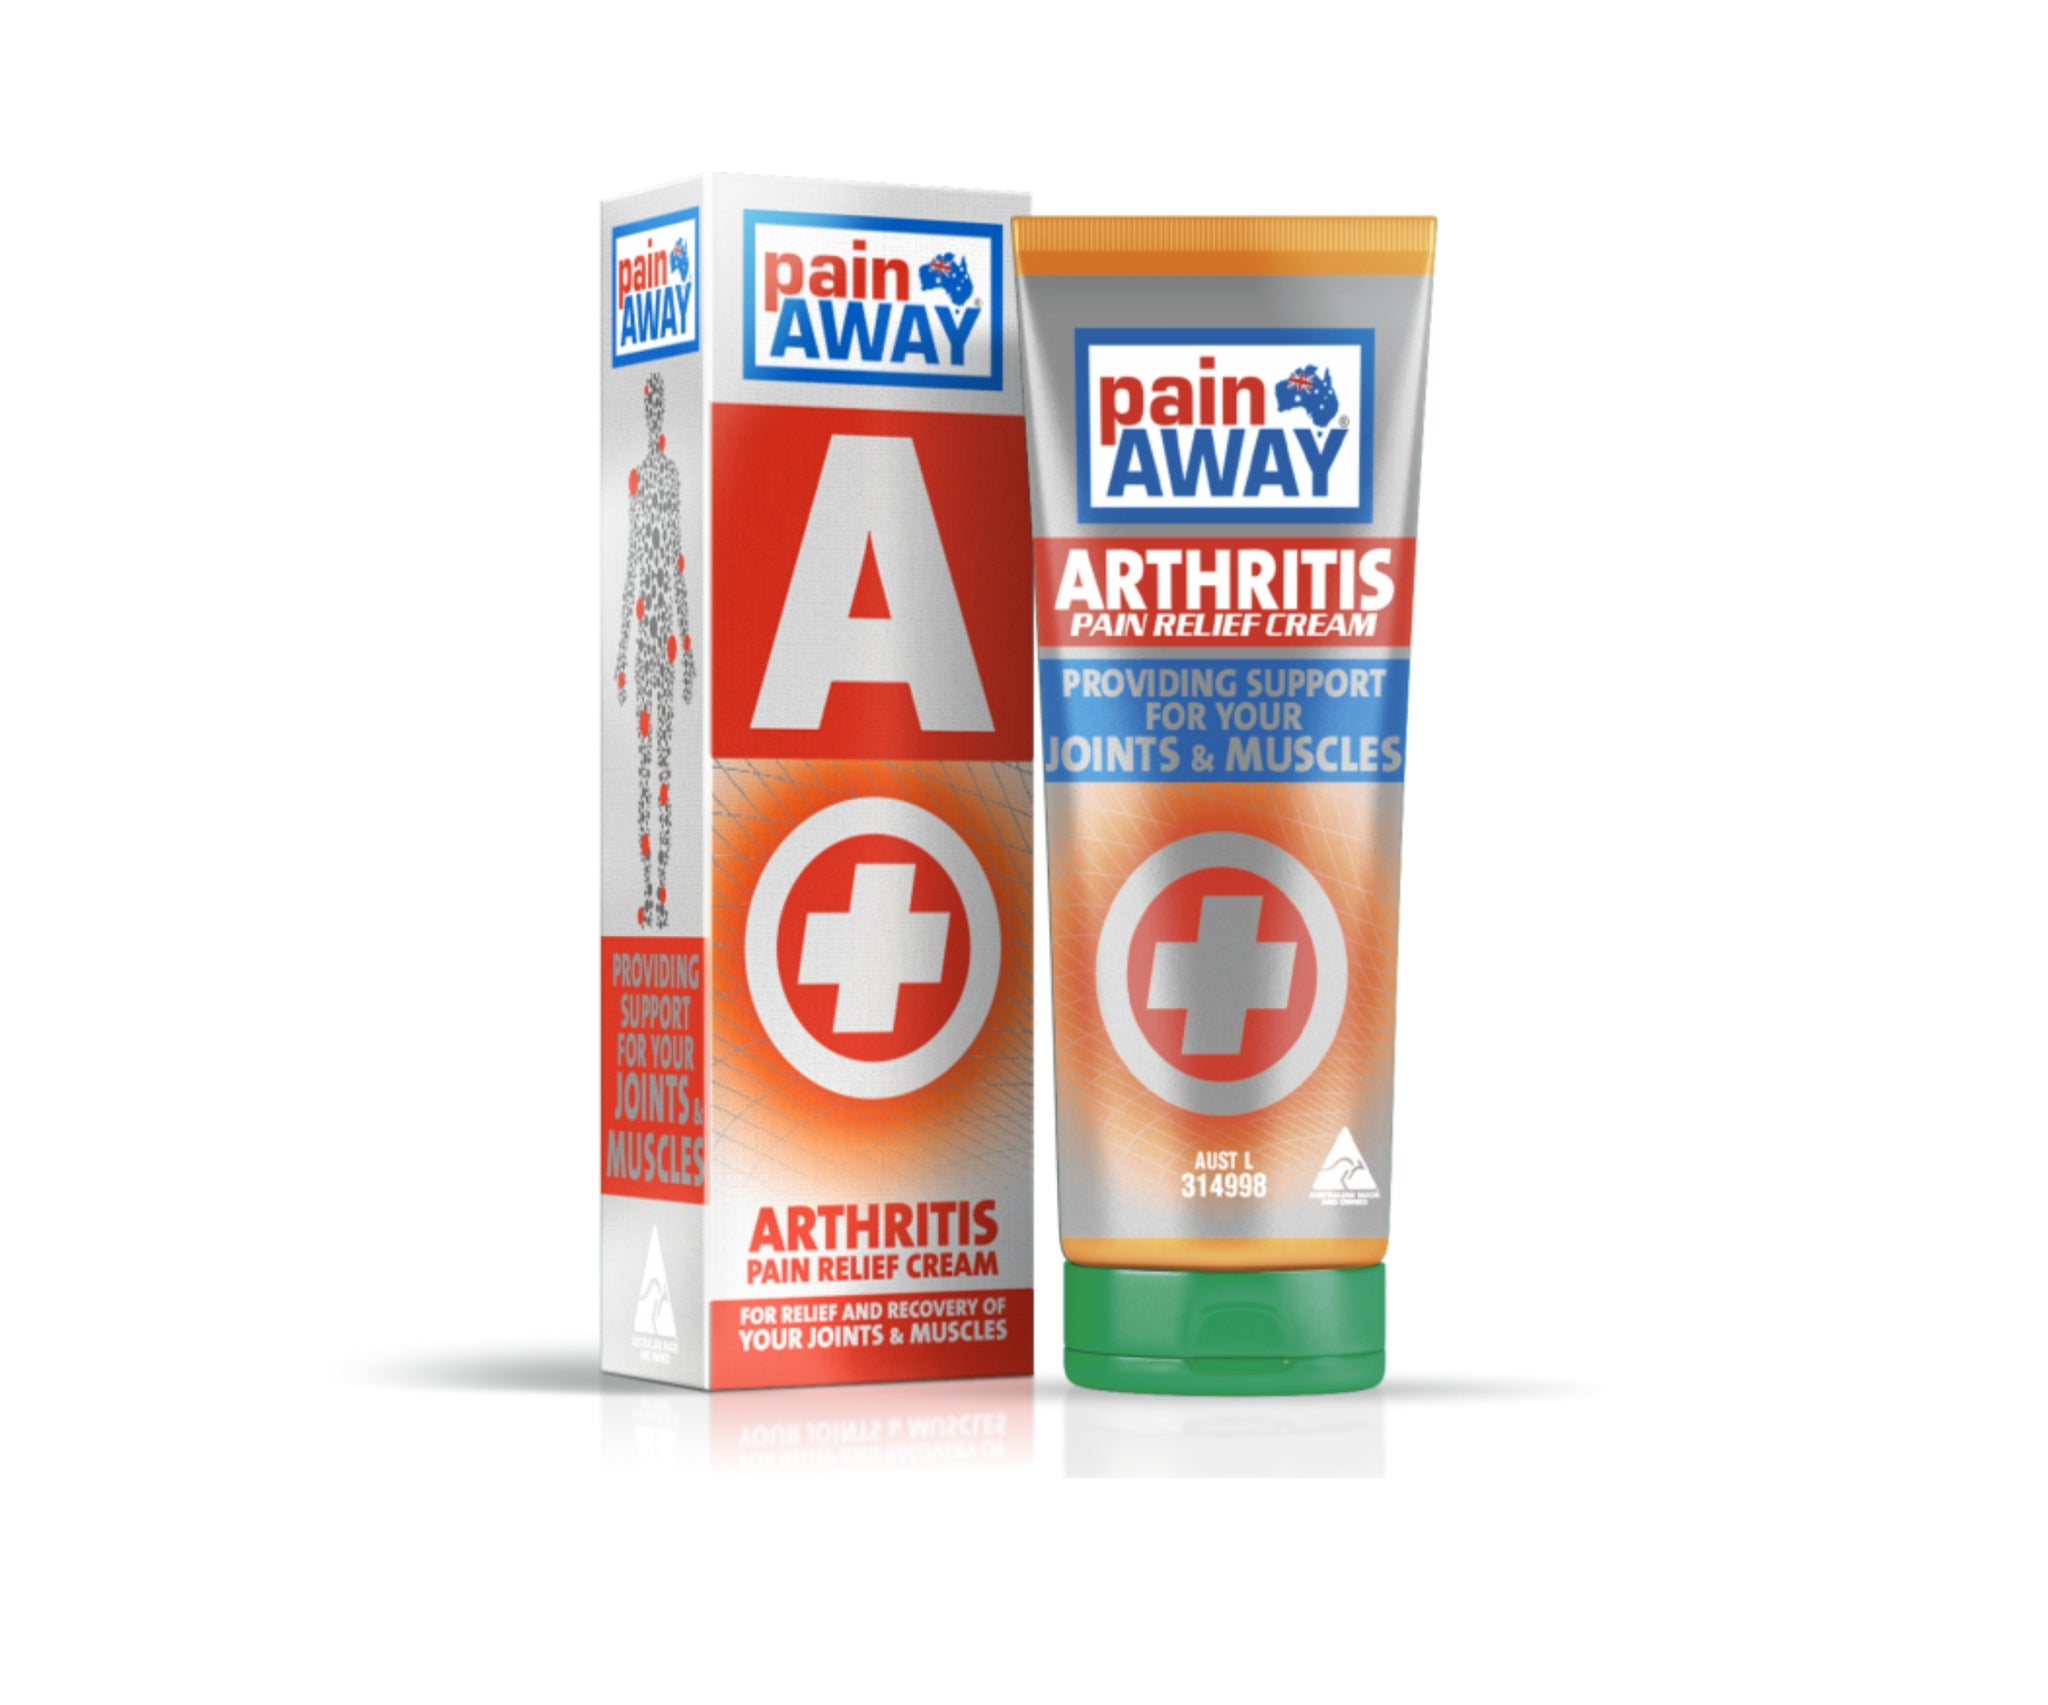 1 x PAIN AWAY ARTHRITIS <BR> PAIN RELIEF CREAM 125G TUBE